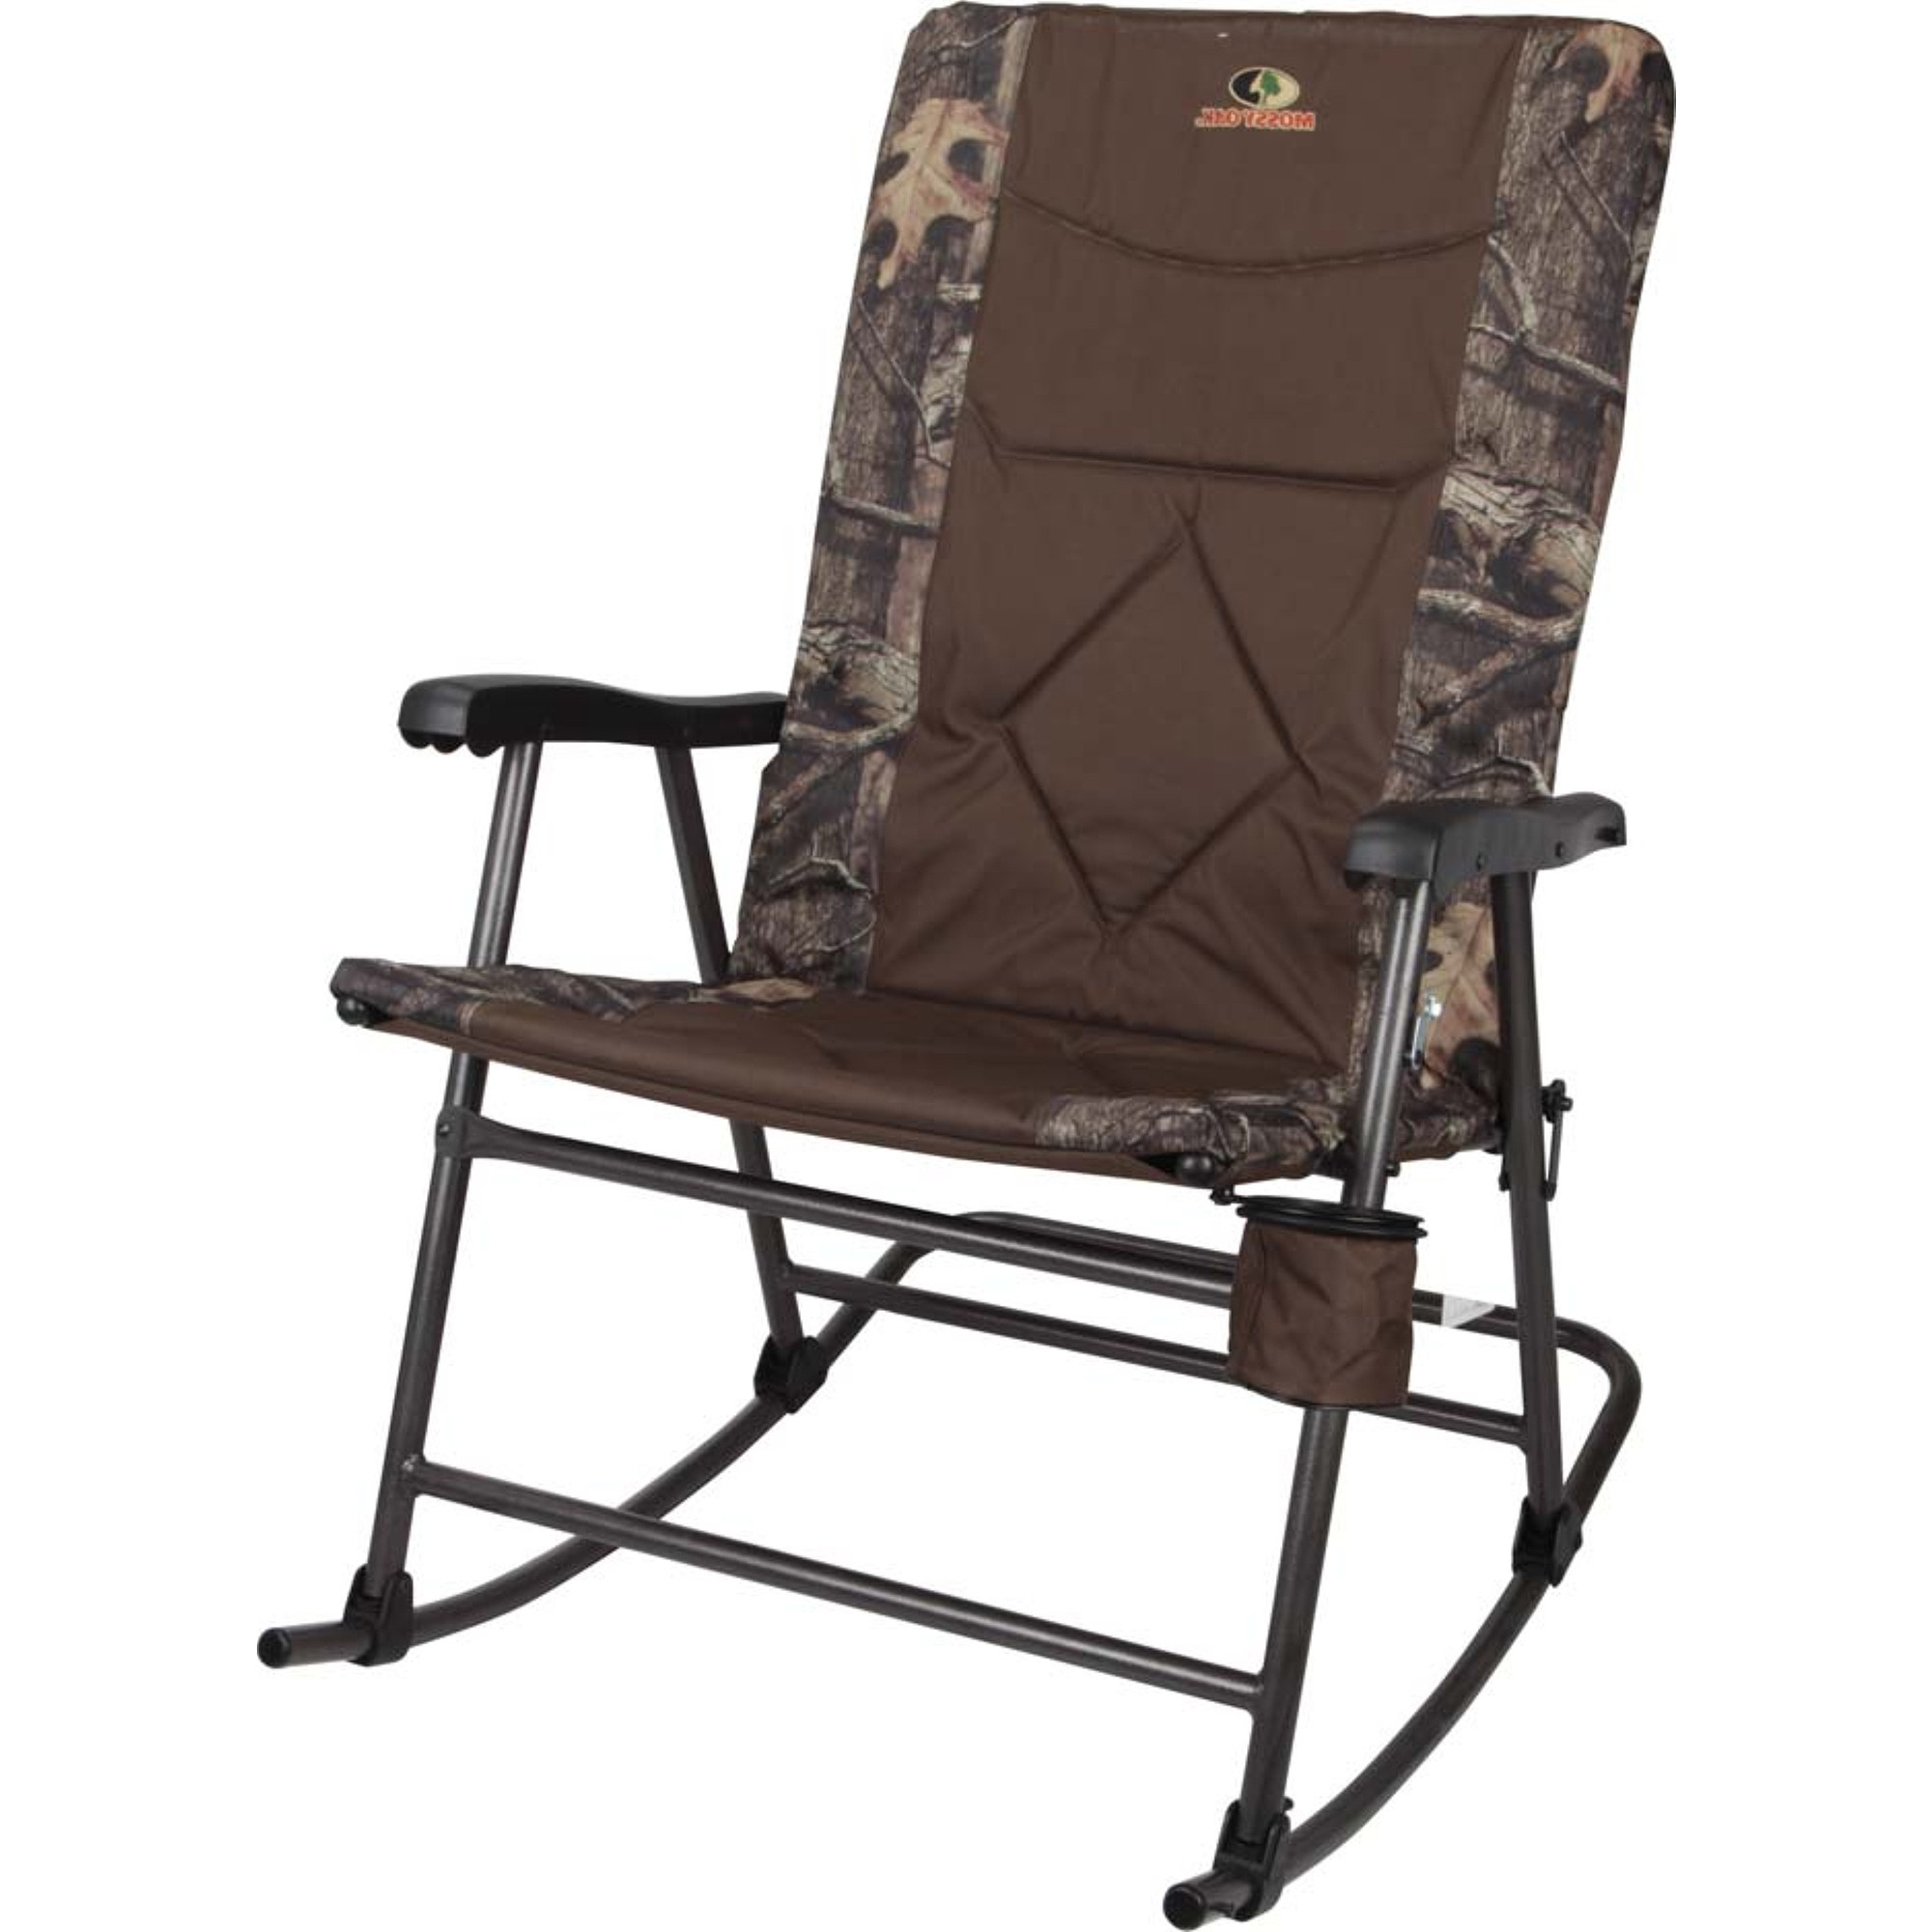 Latest Rocking Chairs At Walmart Throughout Wayfair Rocking Chair Cushions Outdoor Classy Images Design (View 5 of 15)